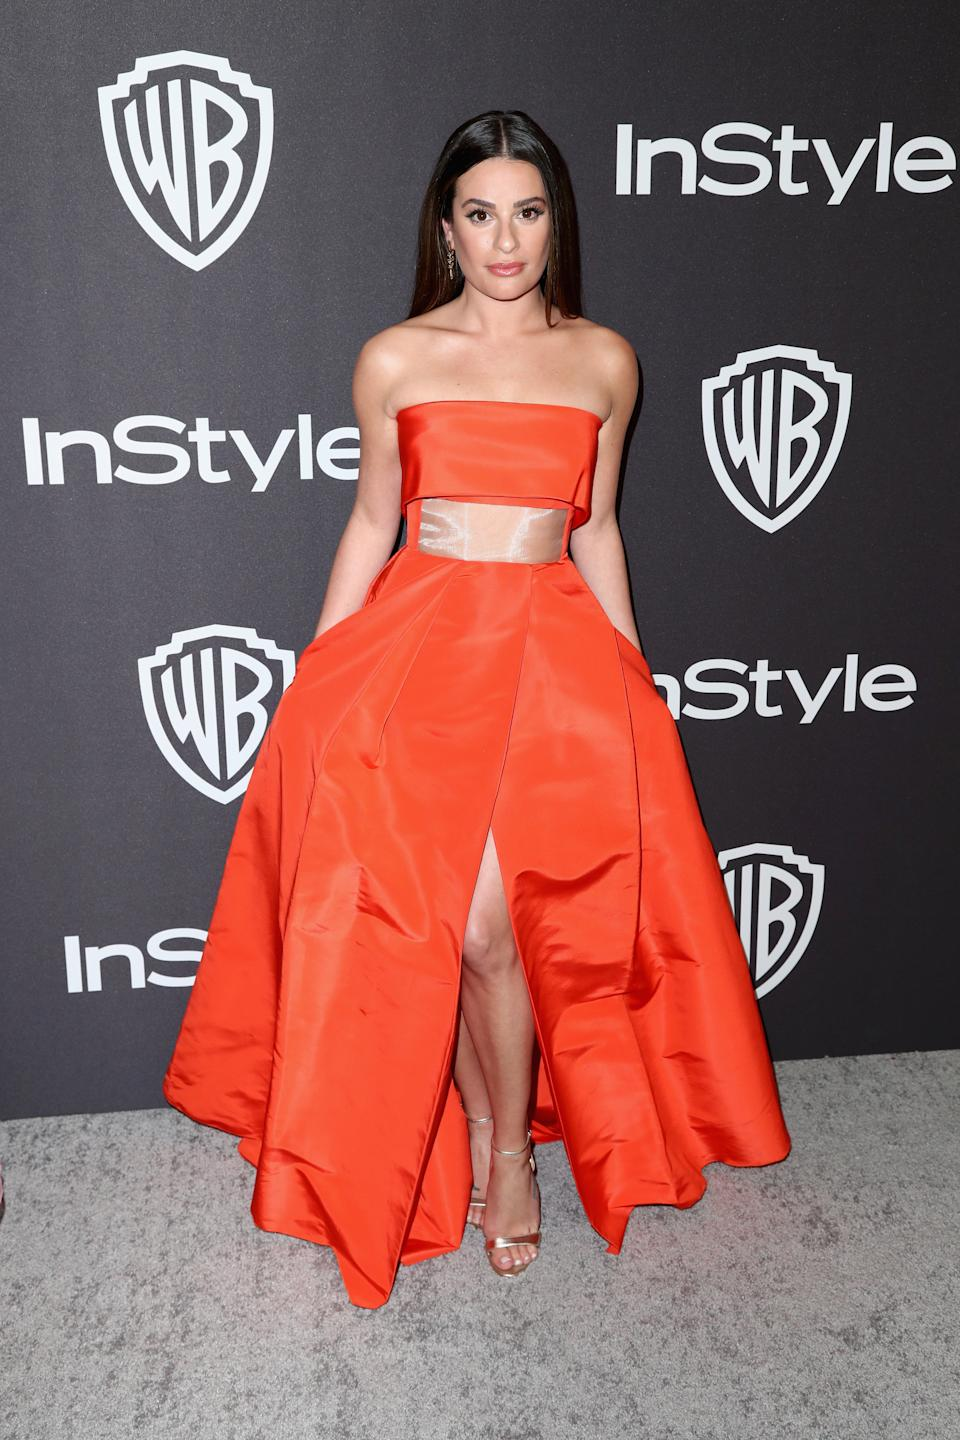 attends the InStyle And Warner Bros. Golden Globes After Party 2019 at The Beverly Hilton Hotel on January 6, 2019 in Beverly Hills, California.